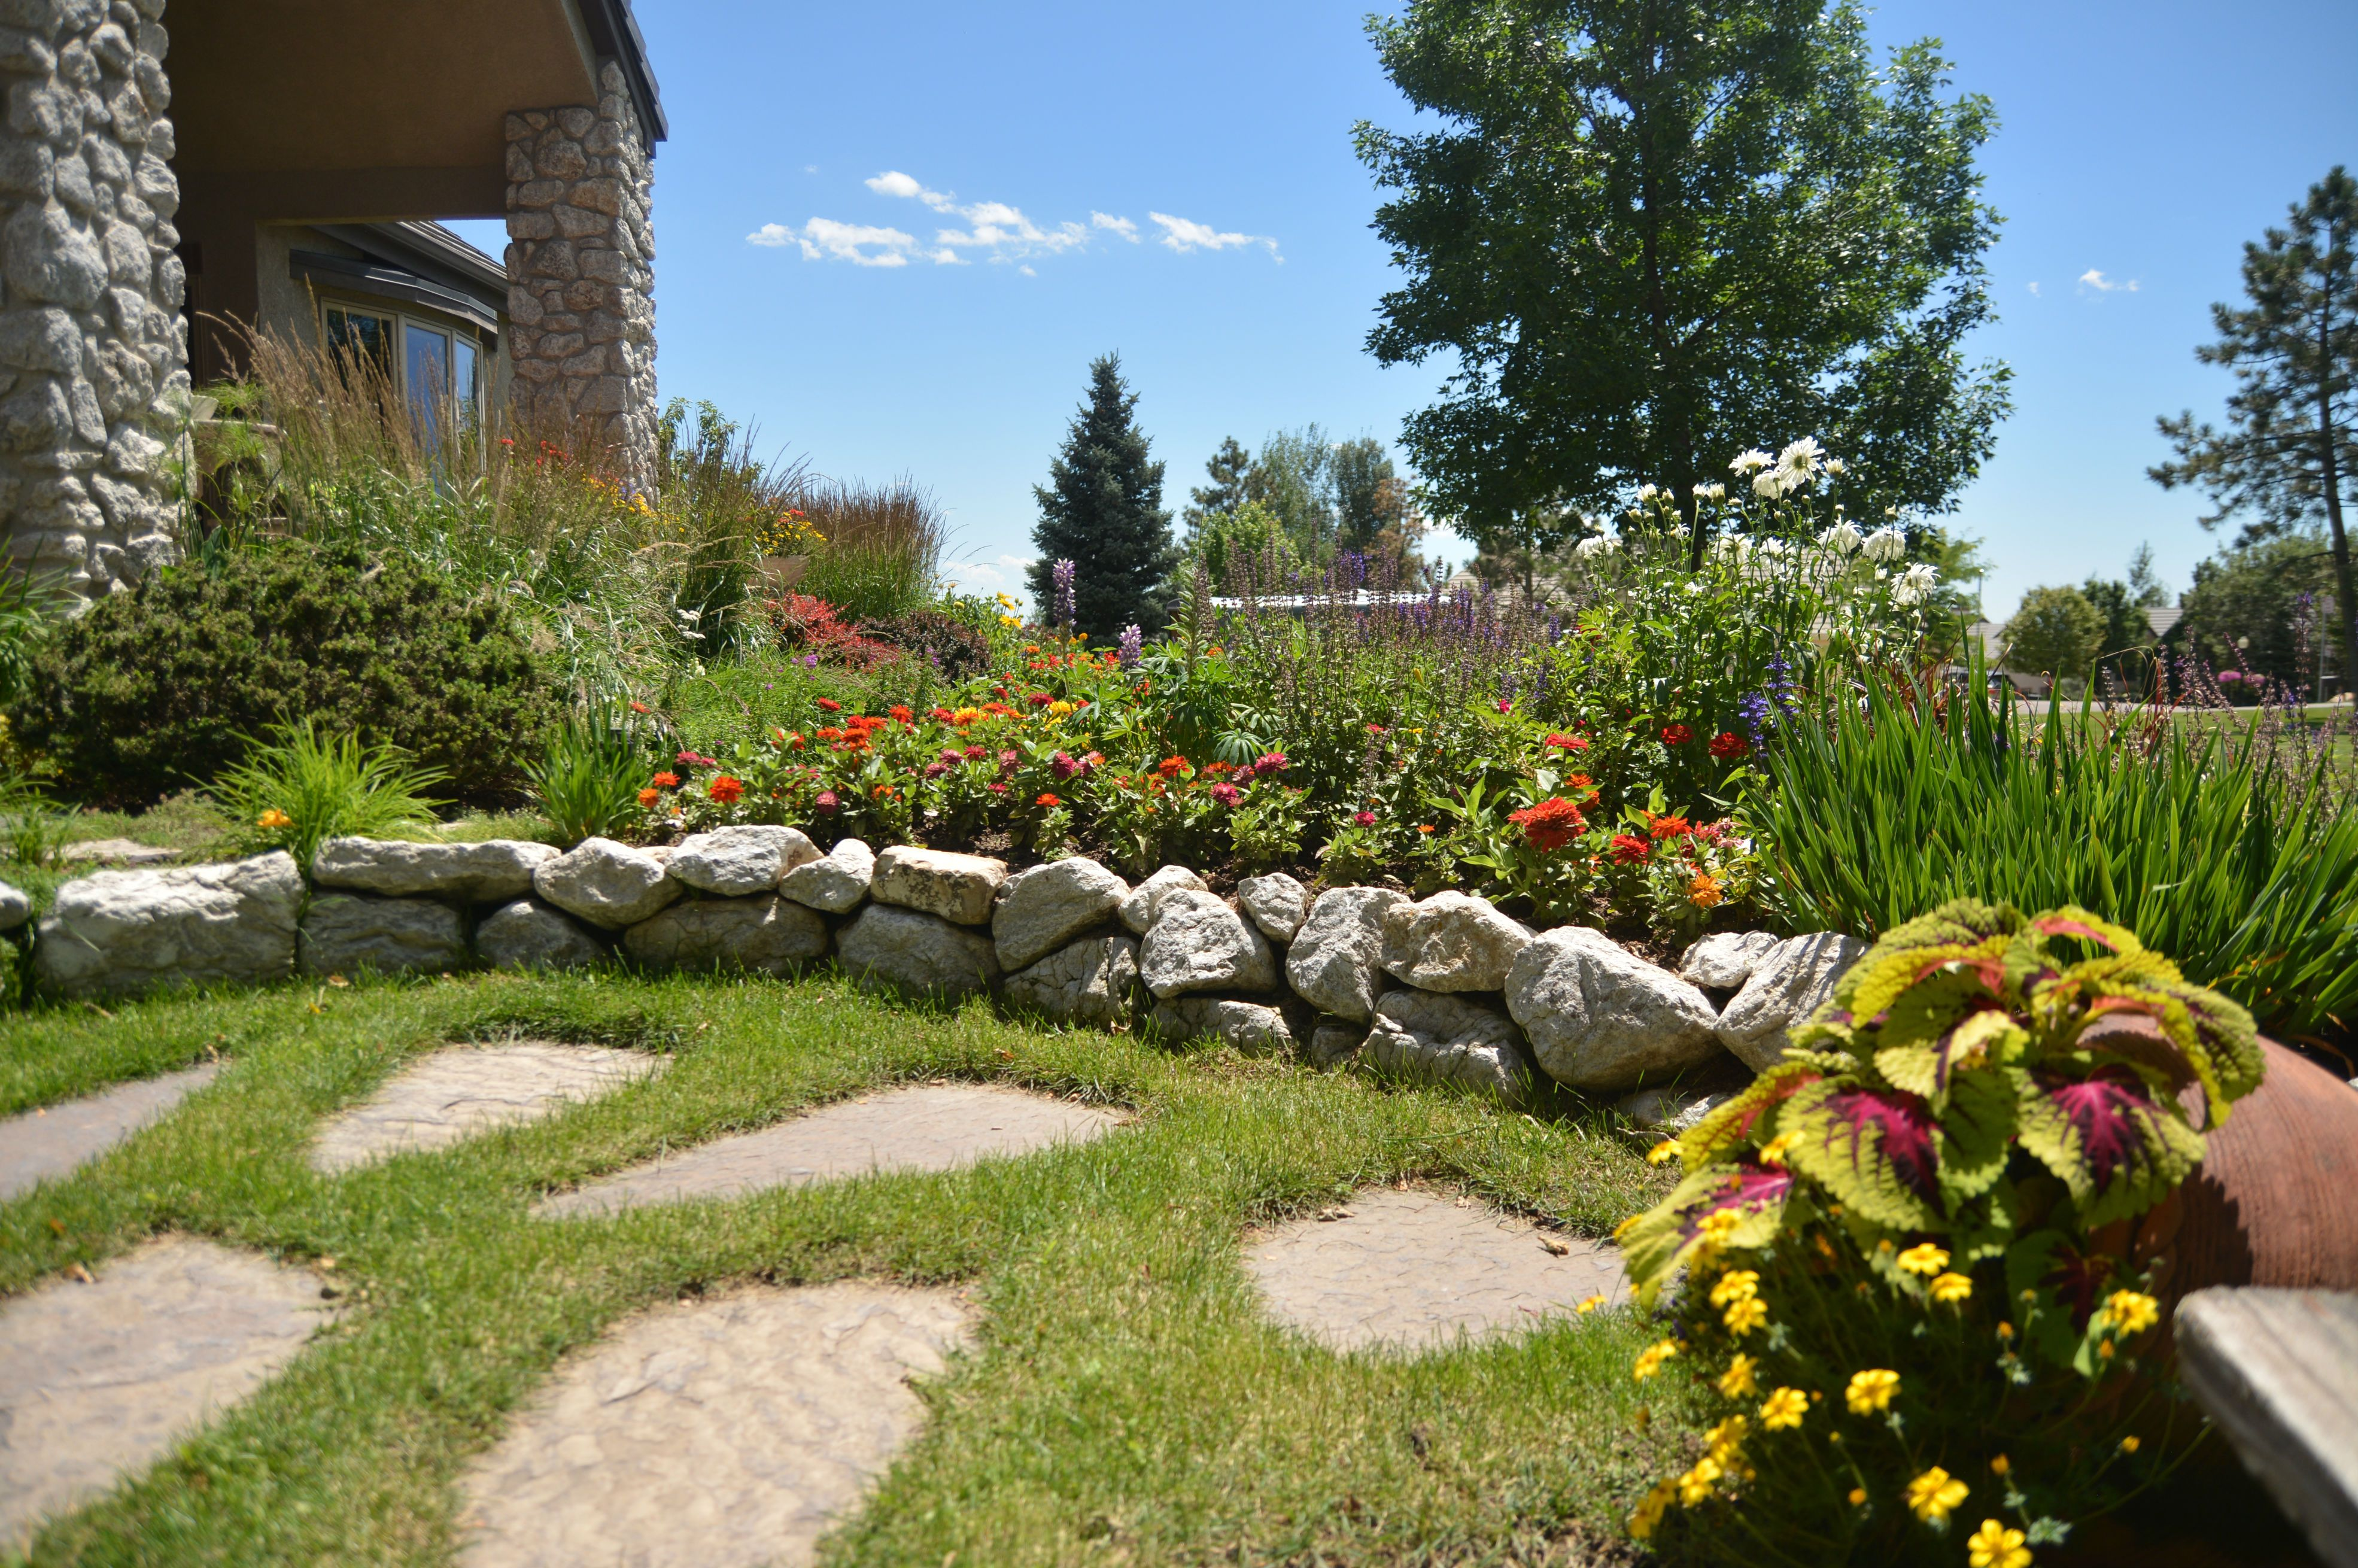 Residential Lawn Care Maintenance In Colorado Springs